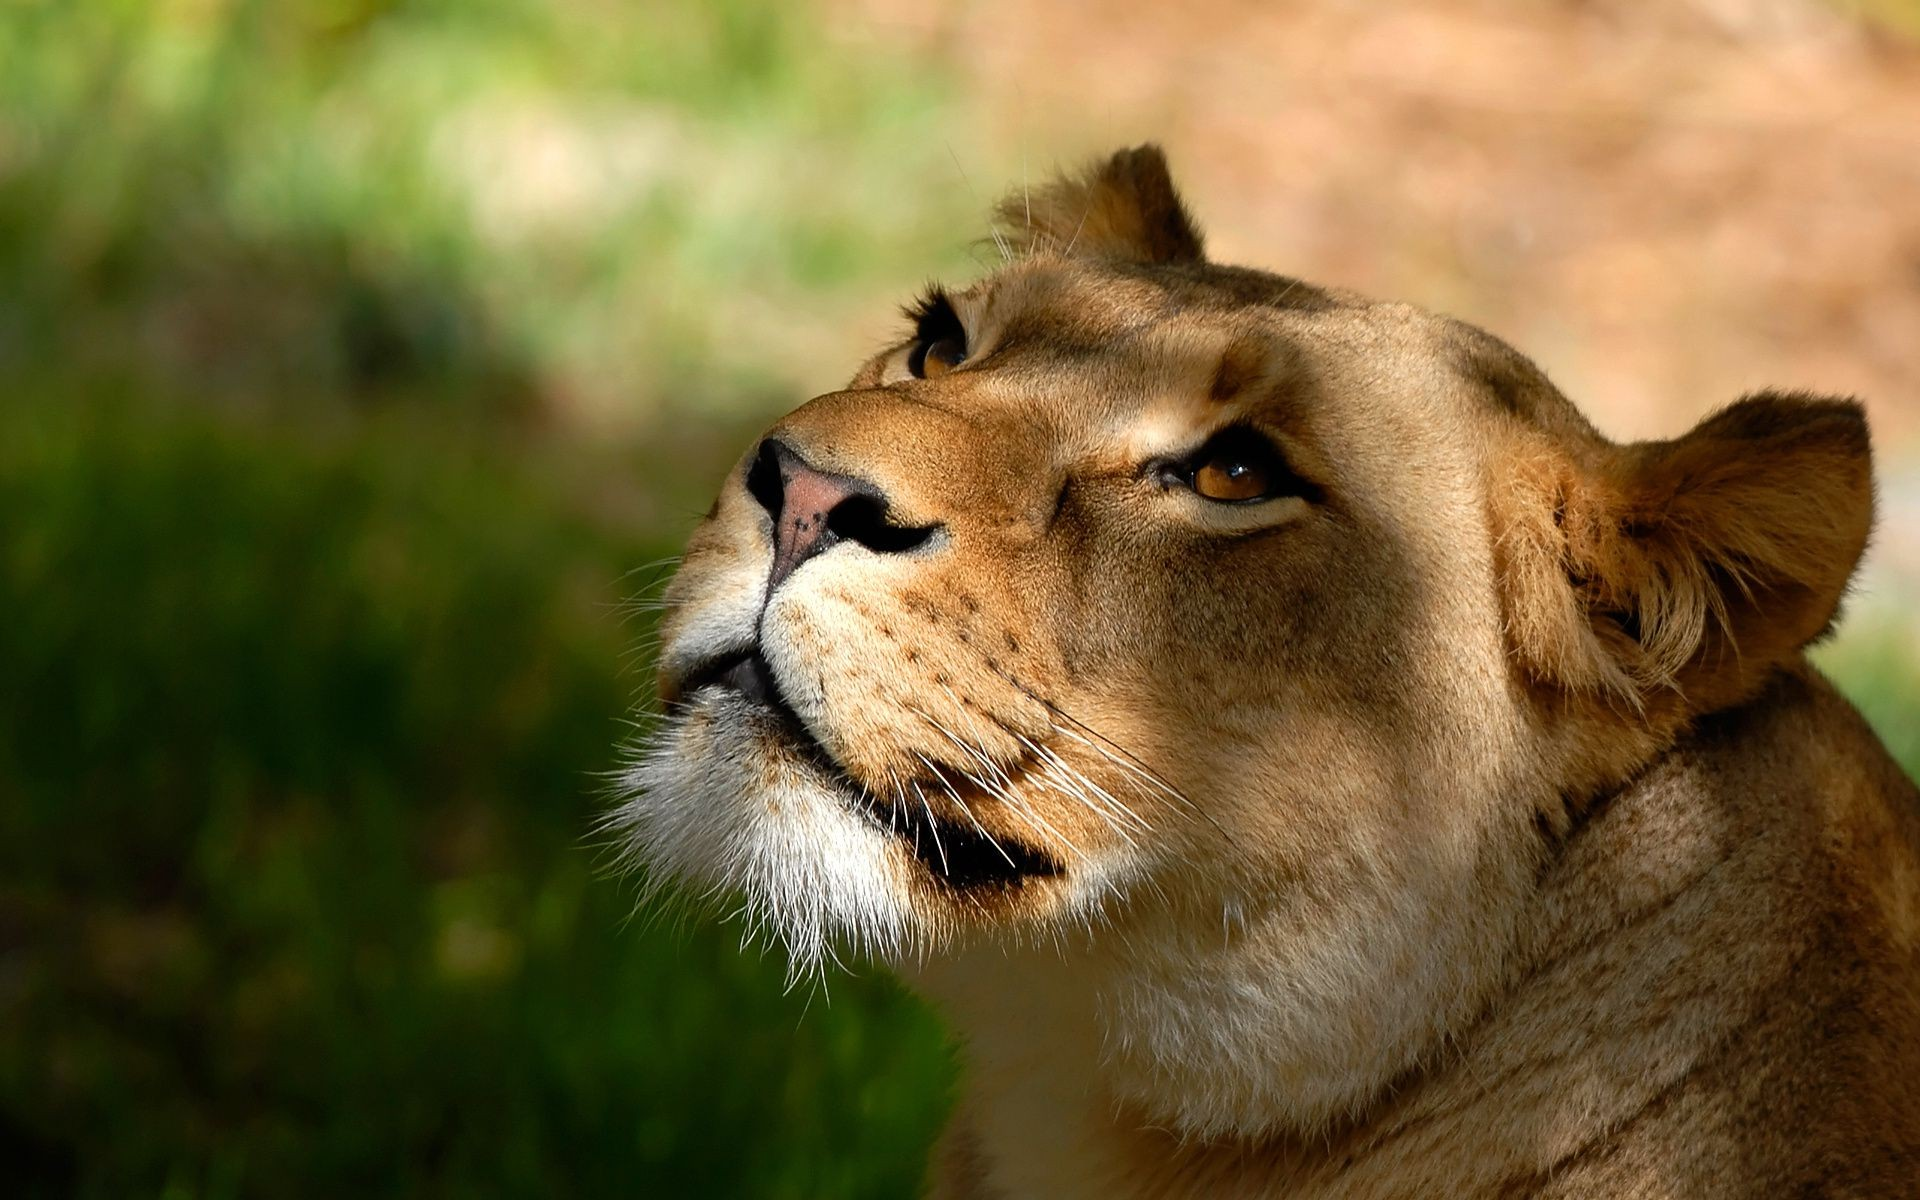 Lion Lioness View The Background Of The Face Head Whiskers Wallpaper